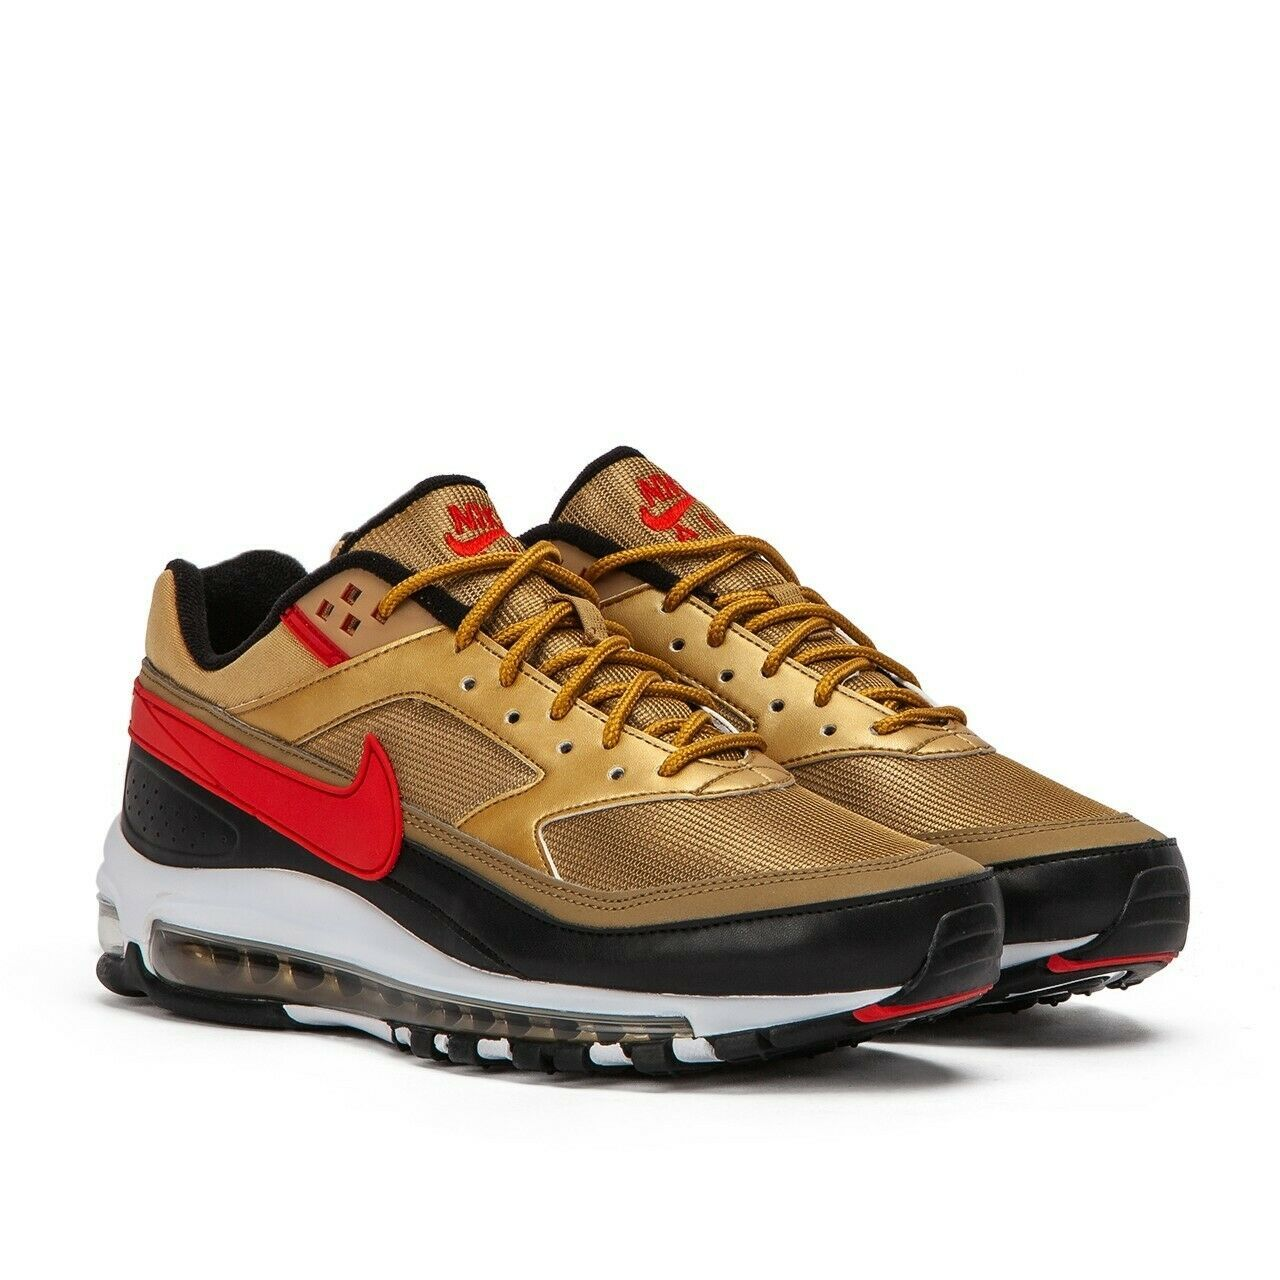 Nike Air Max 97 BW Metallic Gold Red Trainers